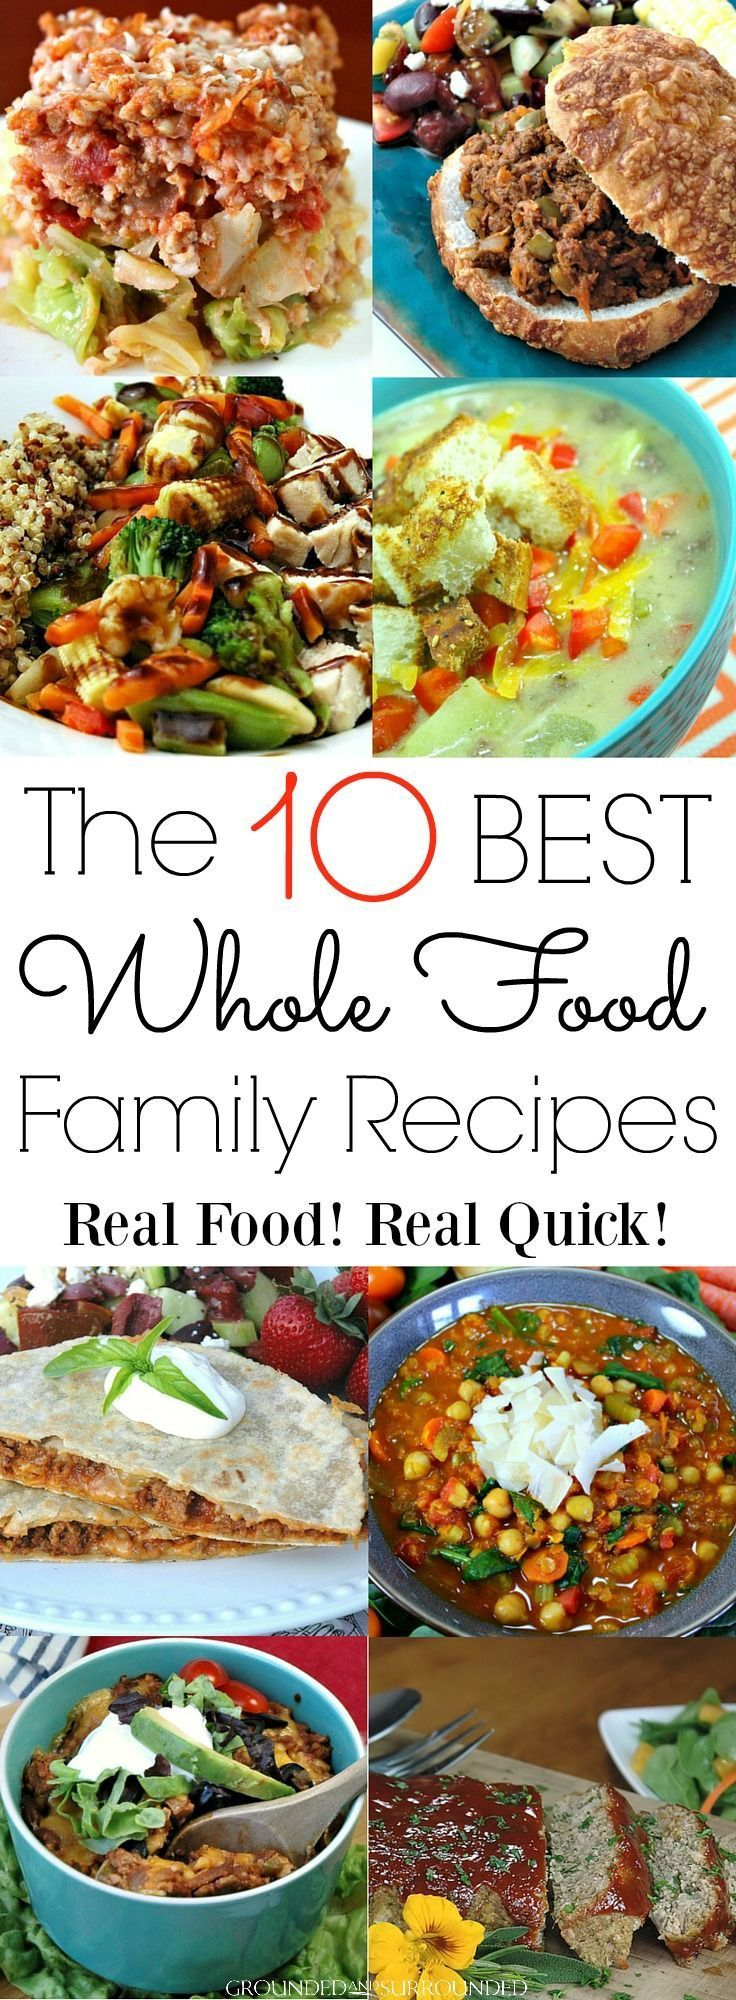 The 10 Best Whole Food Family Recipes | The BEST kid friendly and family favorite recipes just got healthy! Every dinner is easy, delicious, and packed full of nutrient dense whole foods aka vegetables, fruit, and lean protein. Are you on a budget? These meals will stretch your food budget too! You will fall in love with these quick and fun foods whether you follow clean eating, Paleo, or gluten-free vegetarian diets!